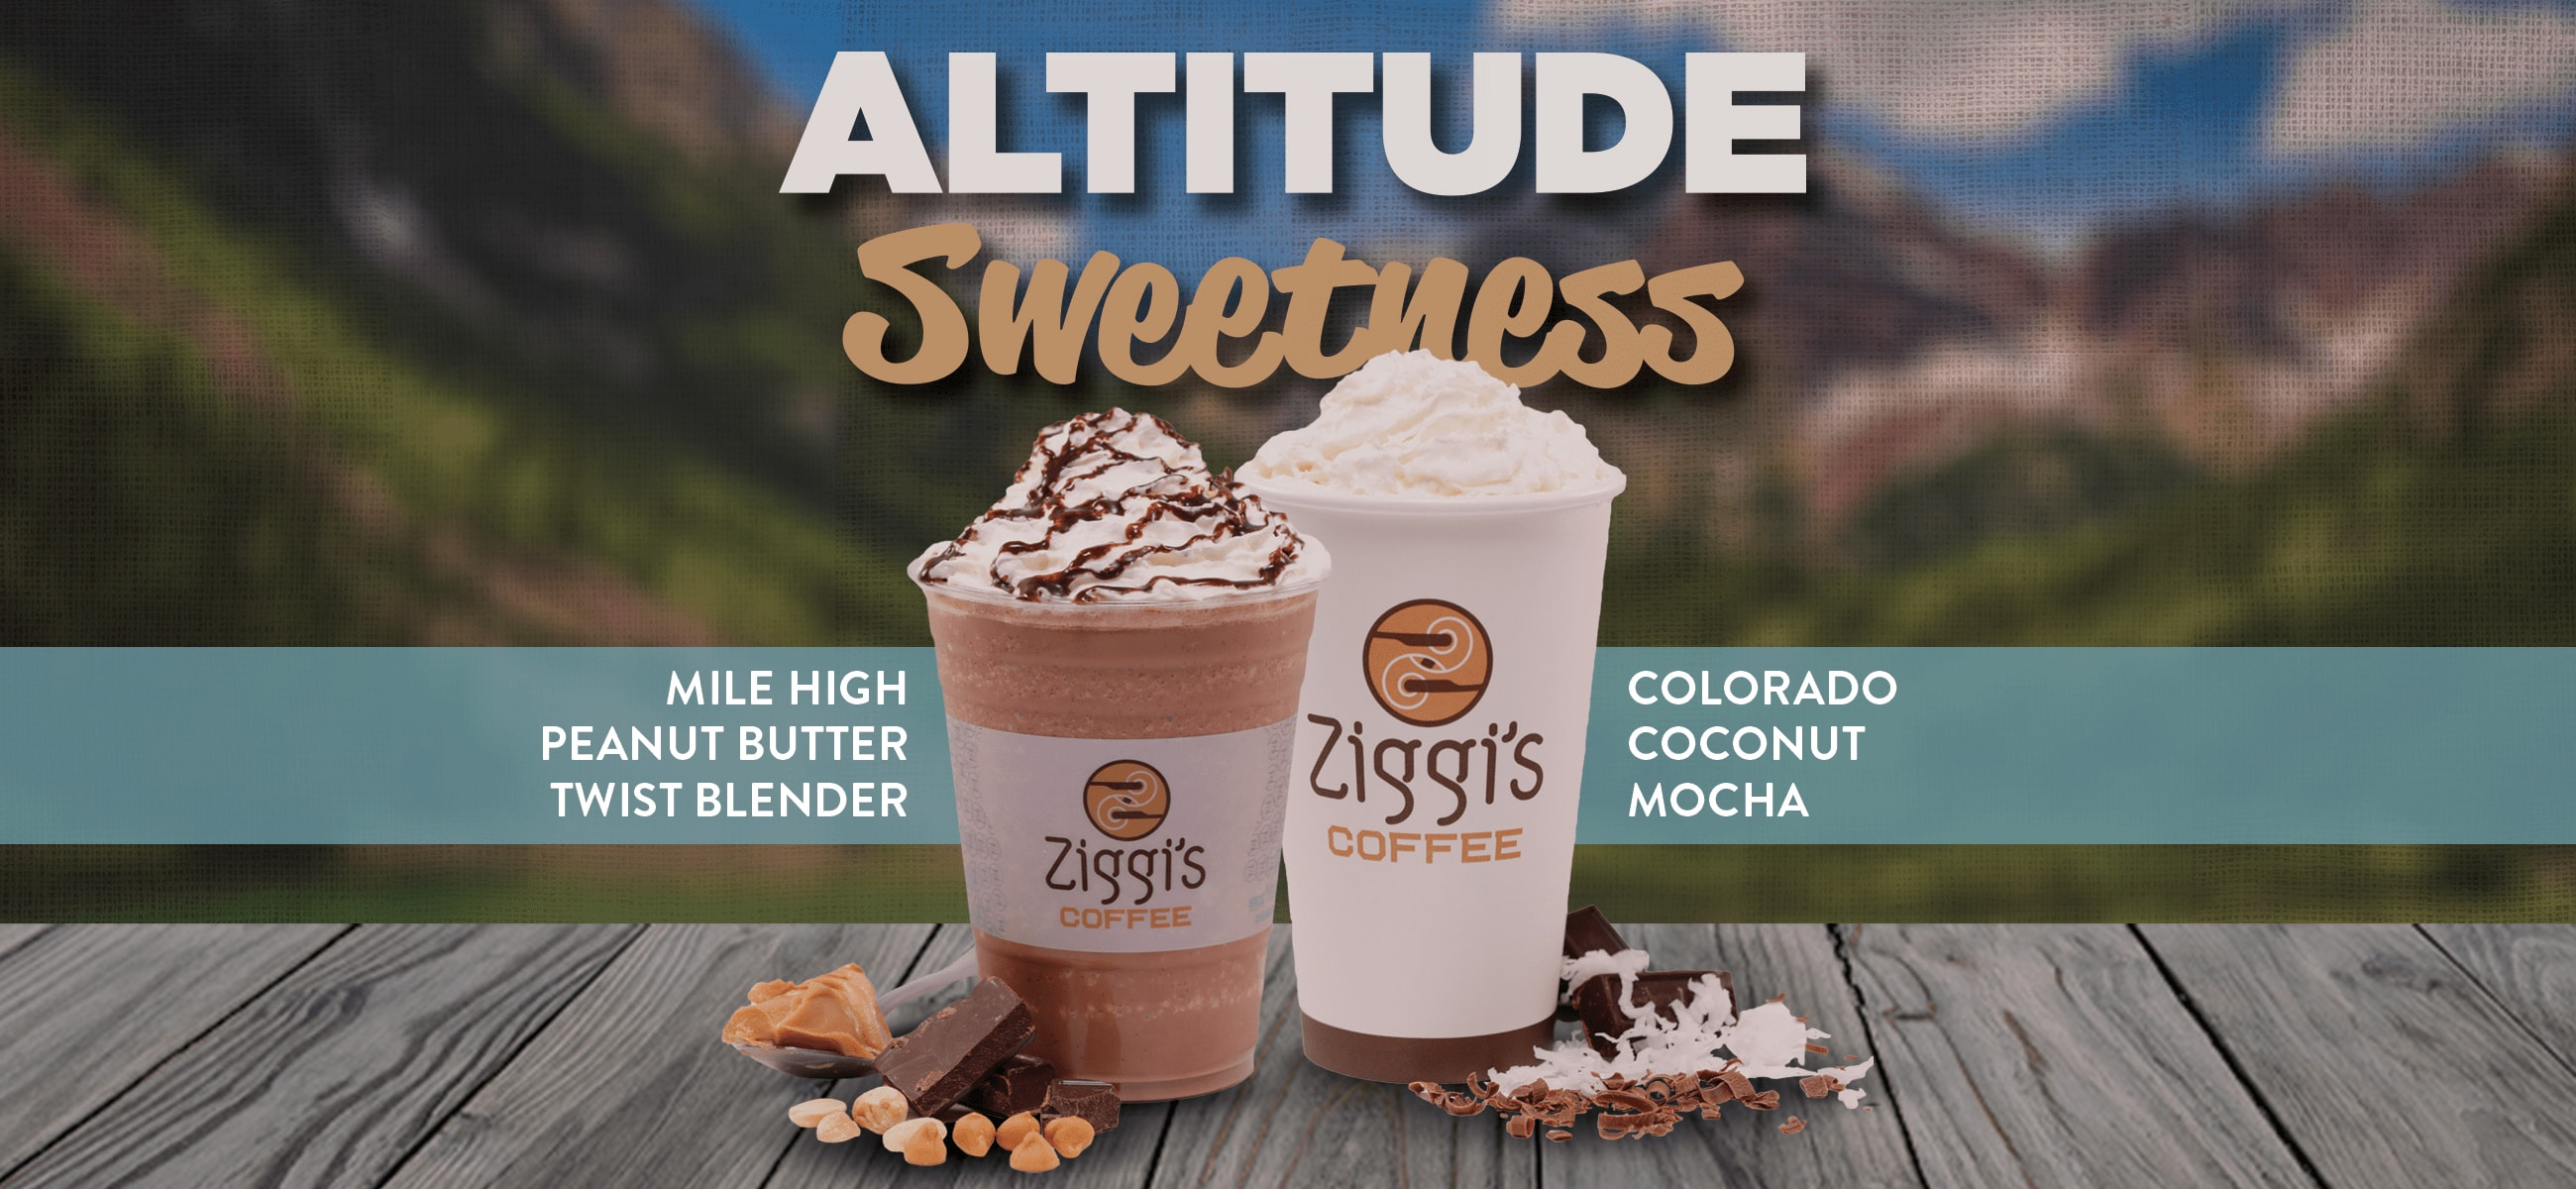 Altitude Sweetness | Photos of a Colorado Coconut Mocha and Mile High Peanut Butter Twist